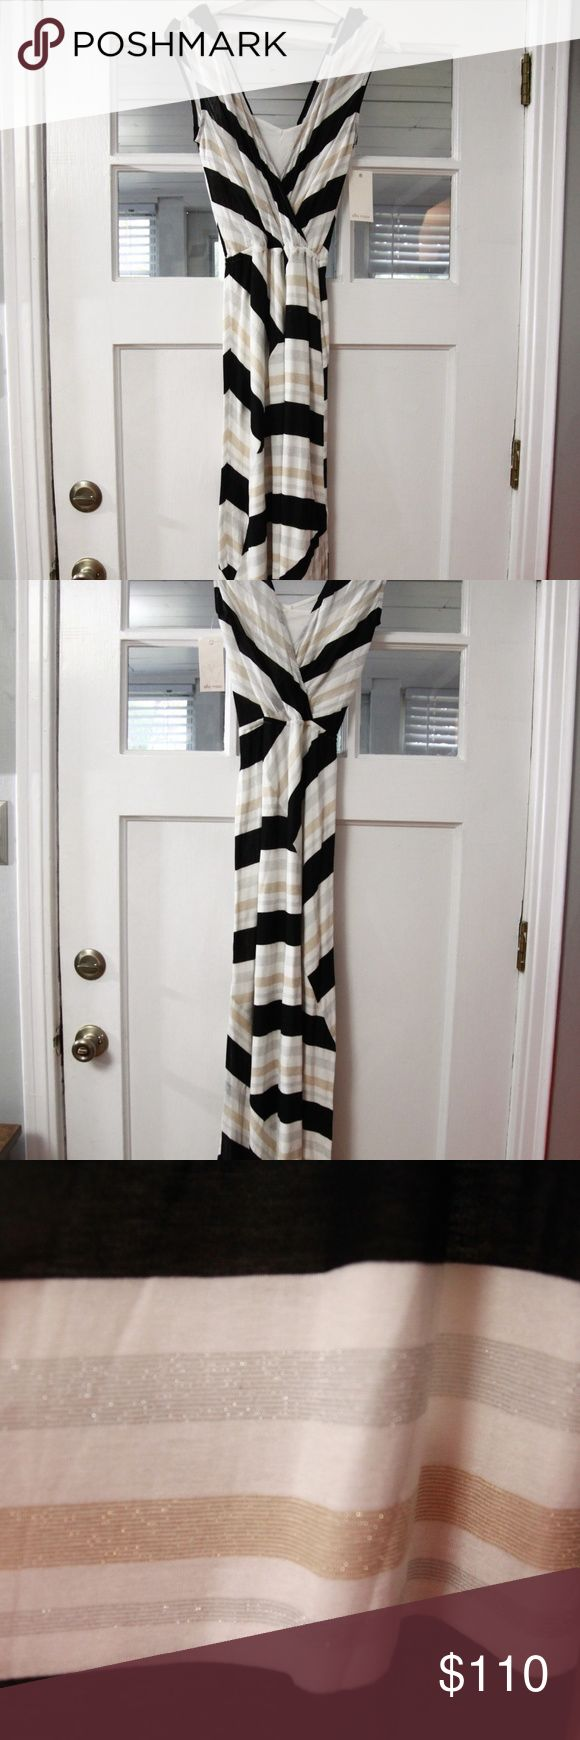 Ella Moss Maxi Dress Sz S New! Black Gold Silver Ella Moss maxi dress in size small. Rayon blend, dry clean. 1/2 in hole in lining (does not affect wear).  Measurements Bust 36 inches Length 59 inches shoulder down inventory 15-107 Ella Moss Dresses Maxi